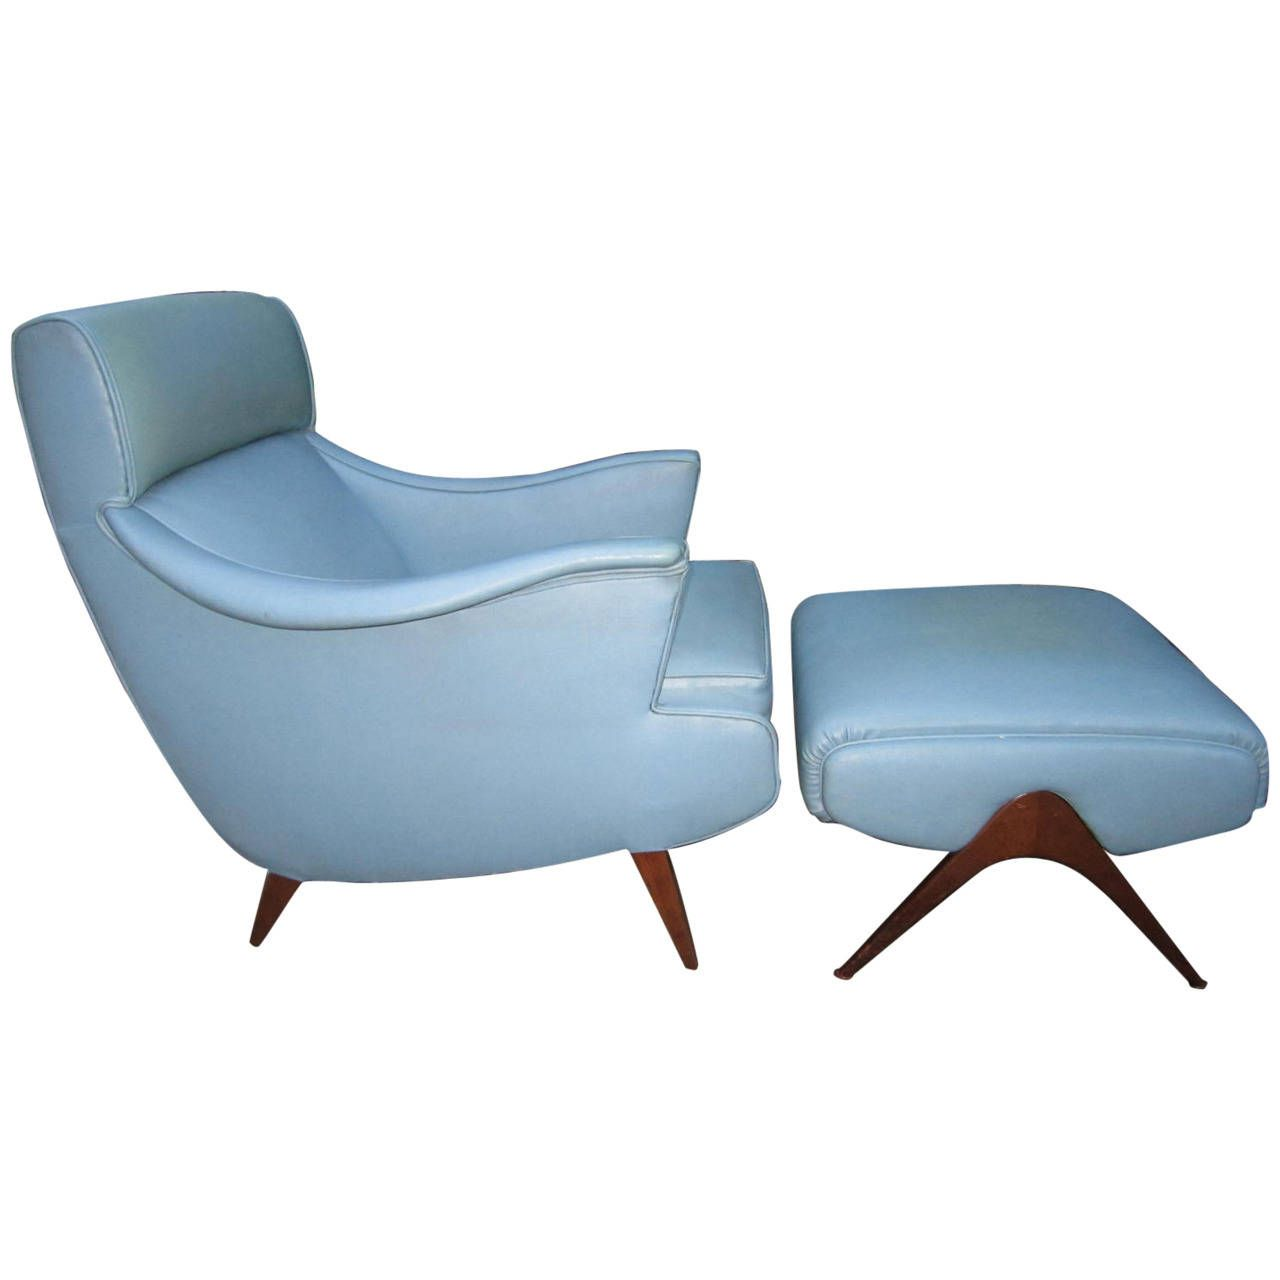 Exciting Mid Century Modern Kagan Inspired Lounge Chair With Ottoman